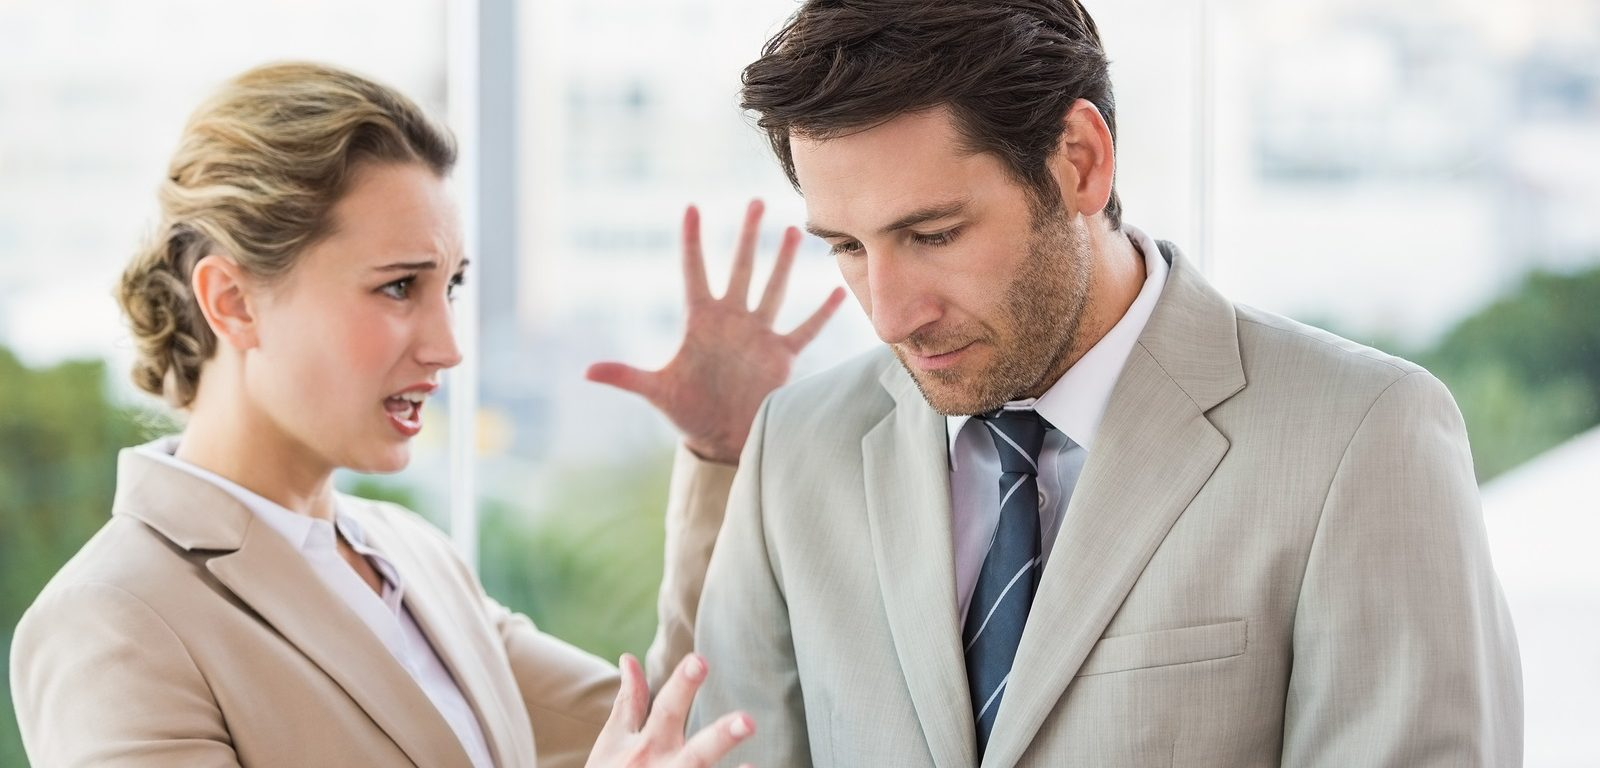 Woman shouting at male colleague in office